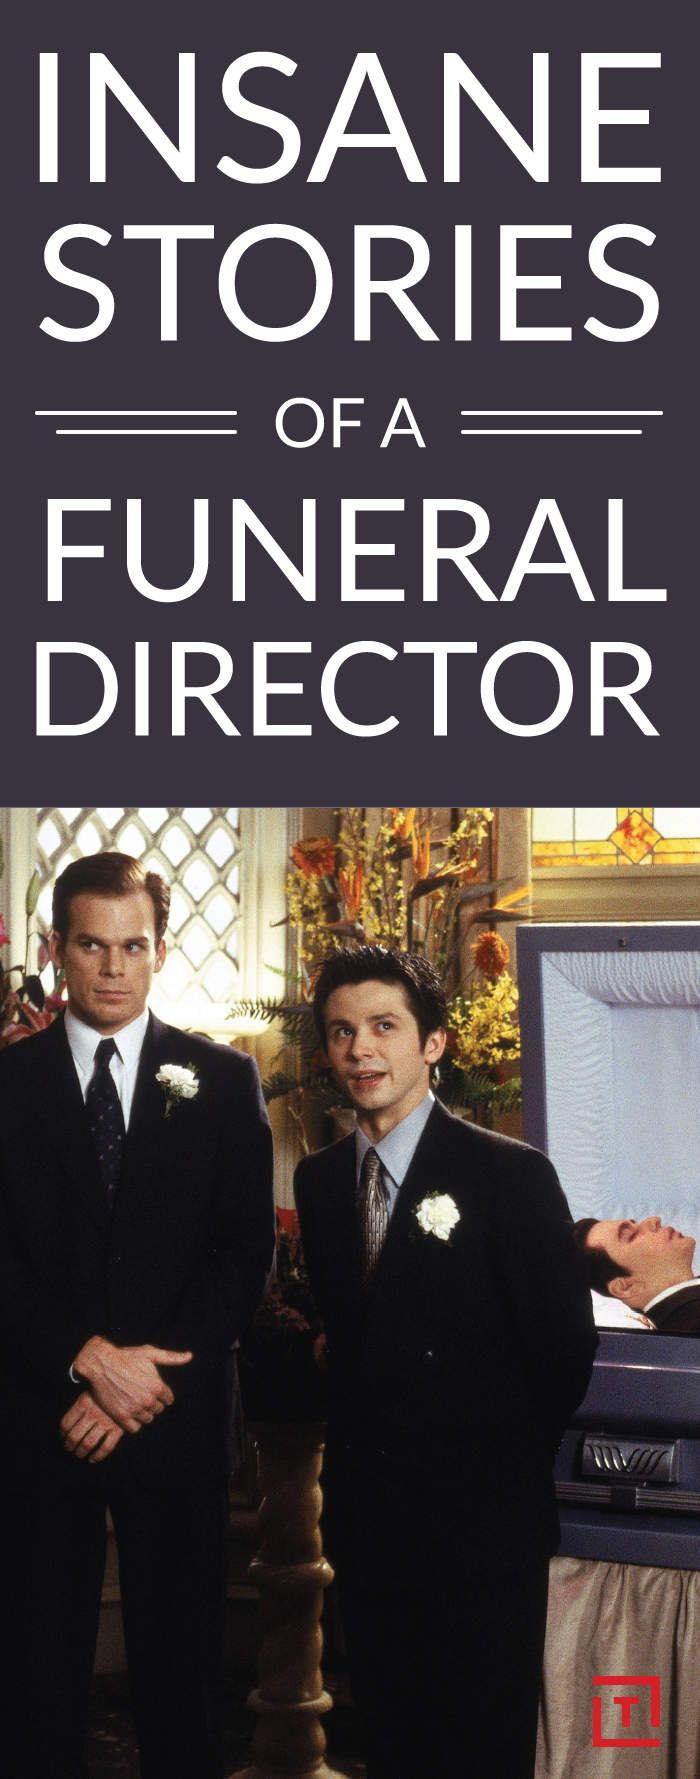 I'm a Funeral Director. And Yes, My Stories Are Insane.